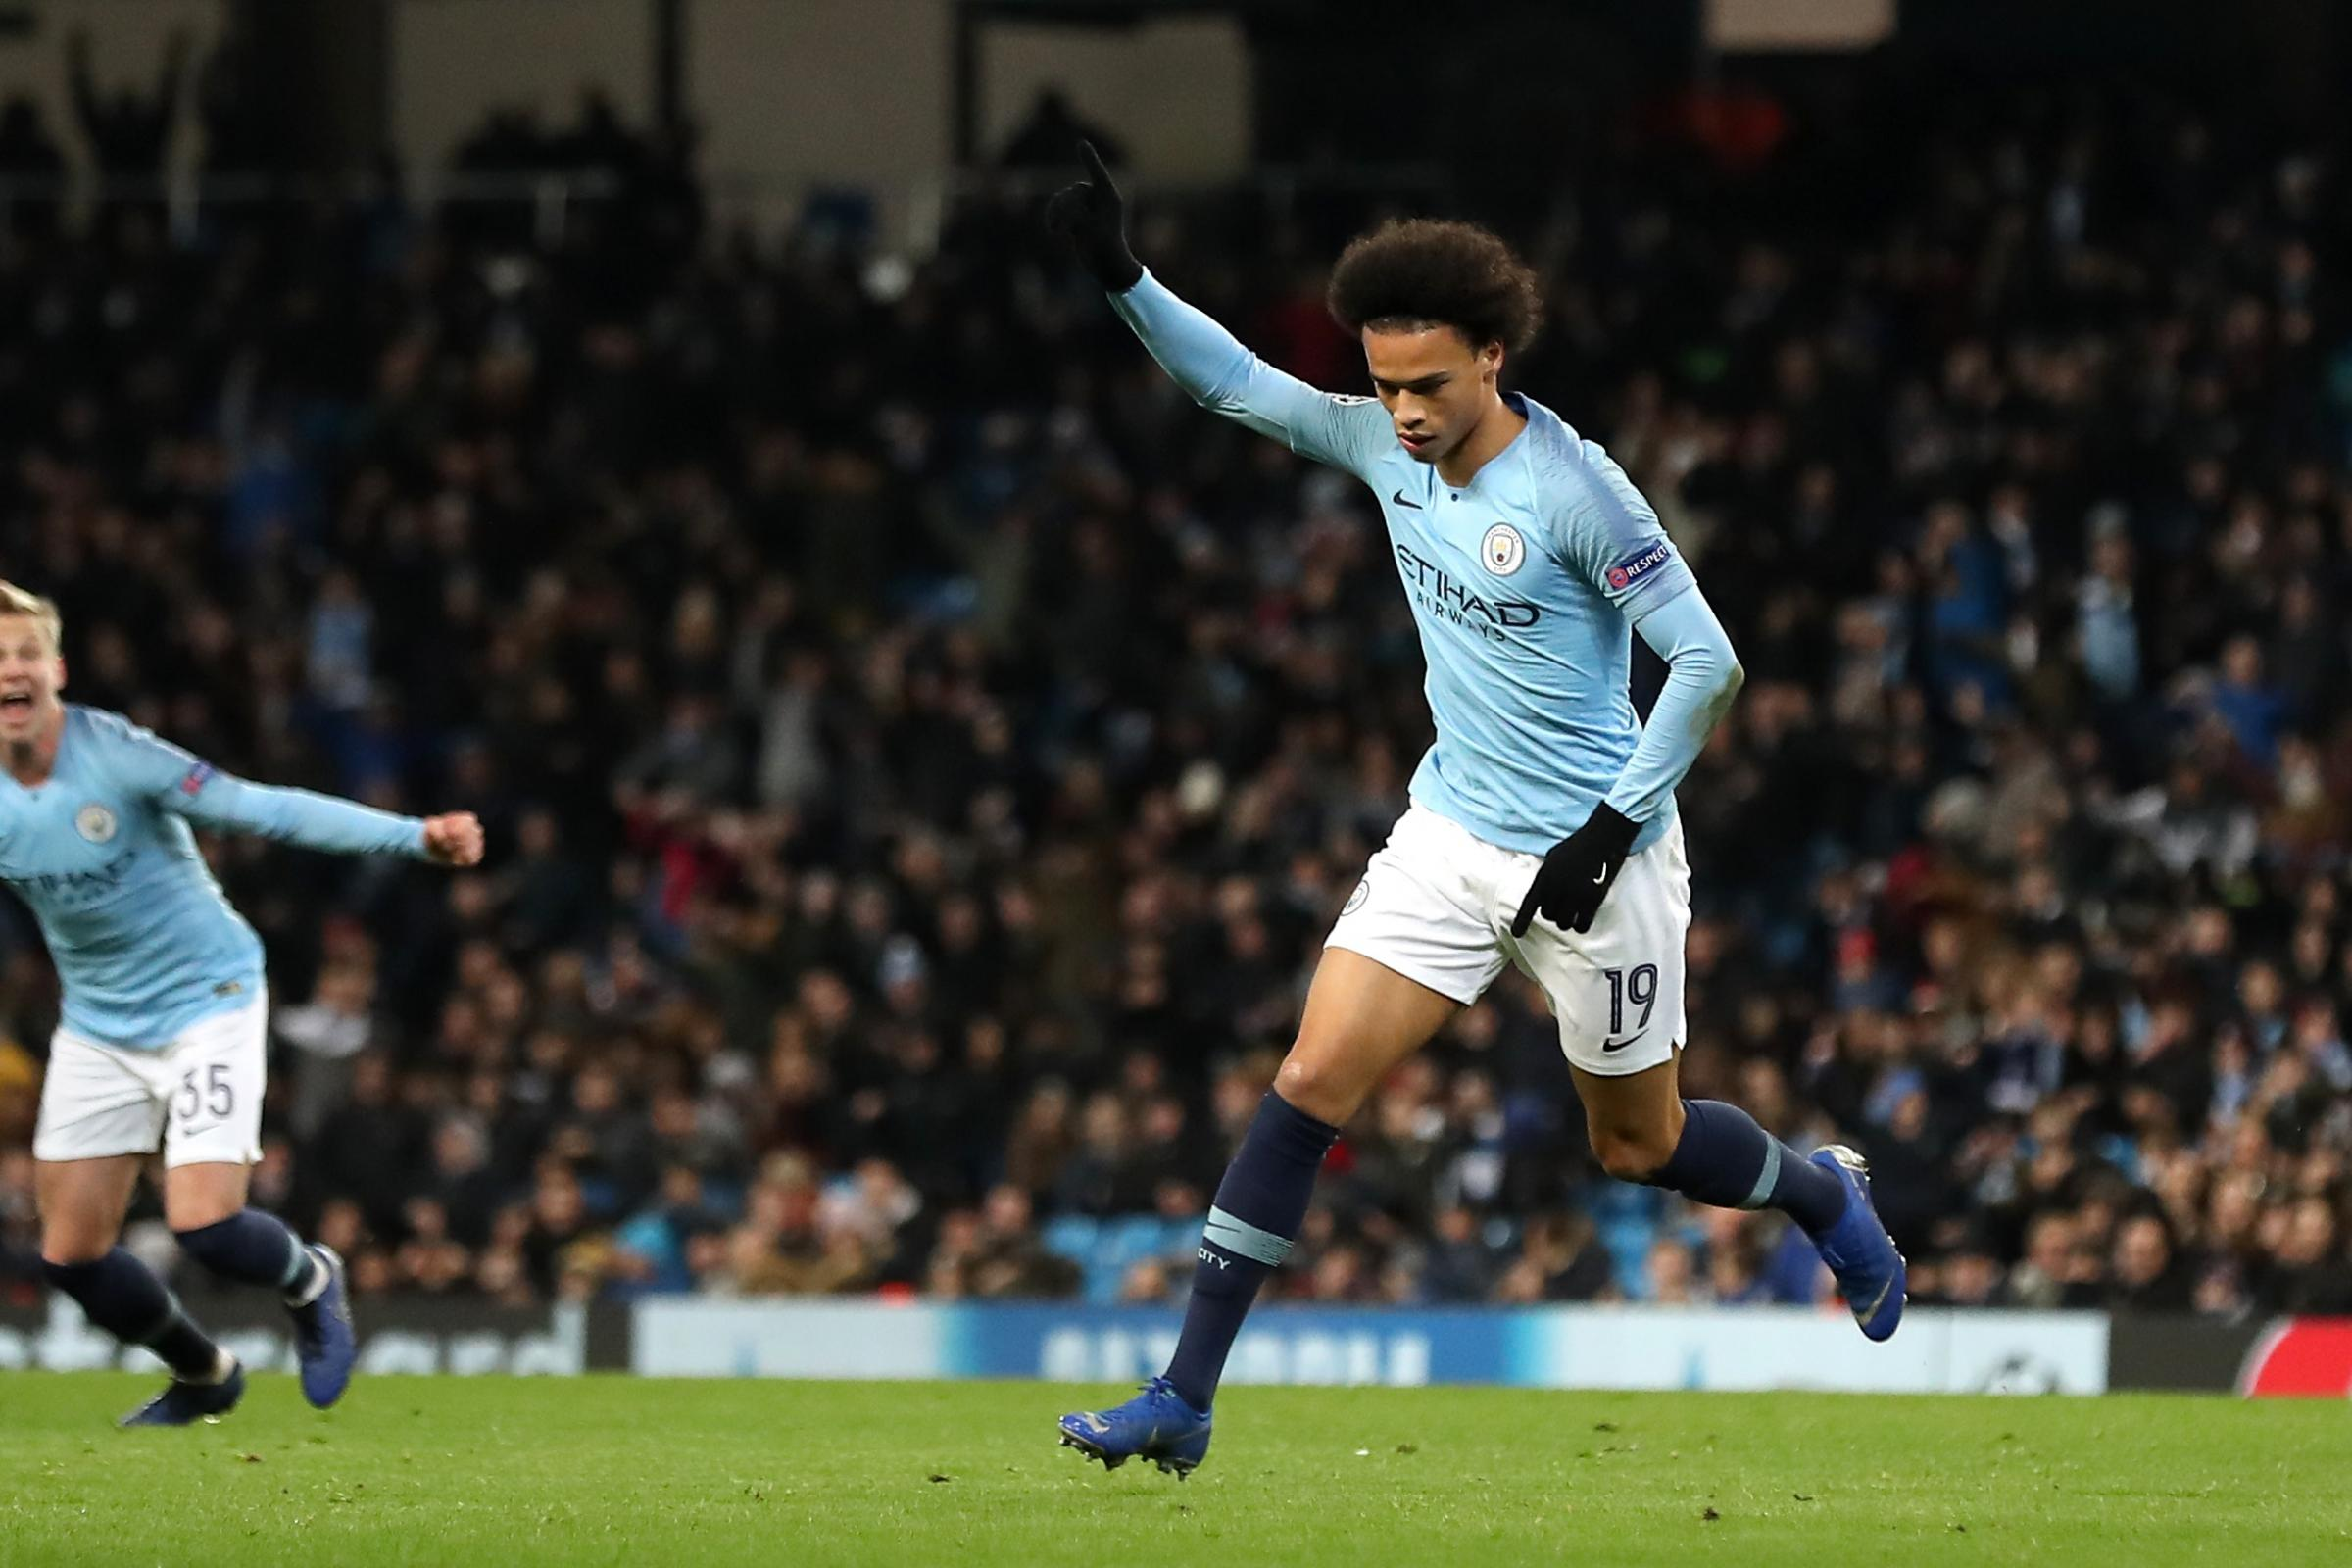 Leroy Sane scored twice as Manchester City beat Hoffenheim